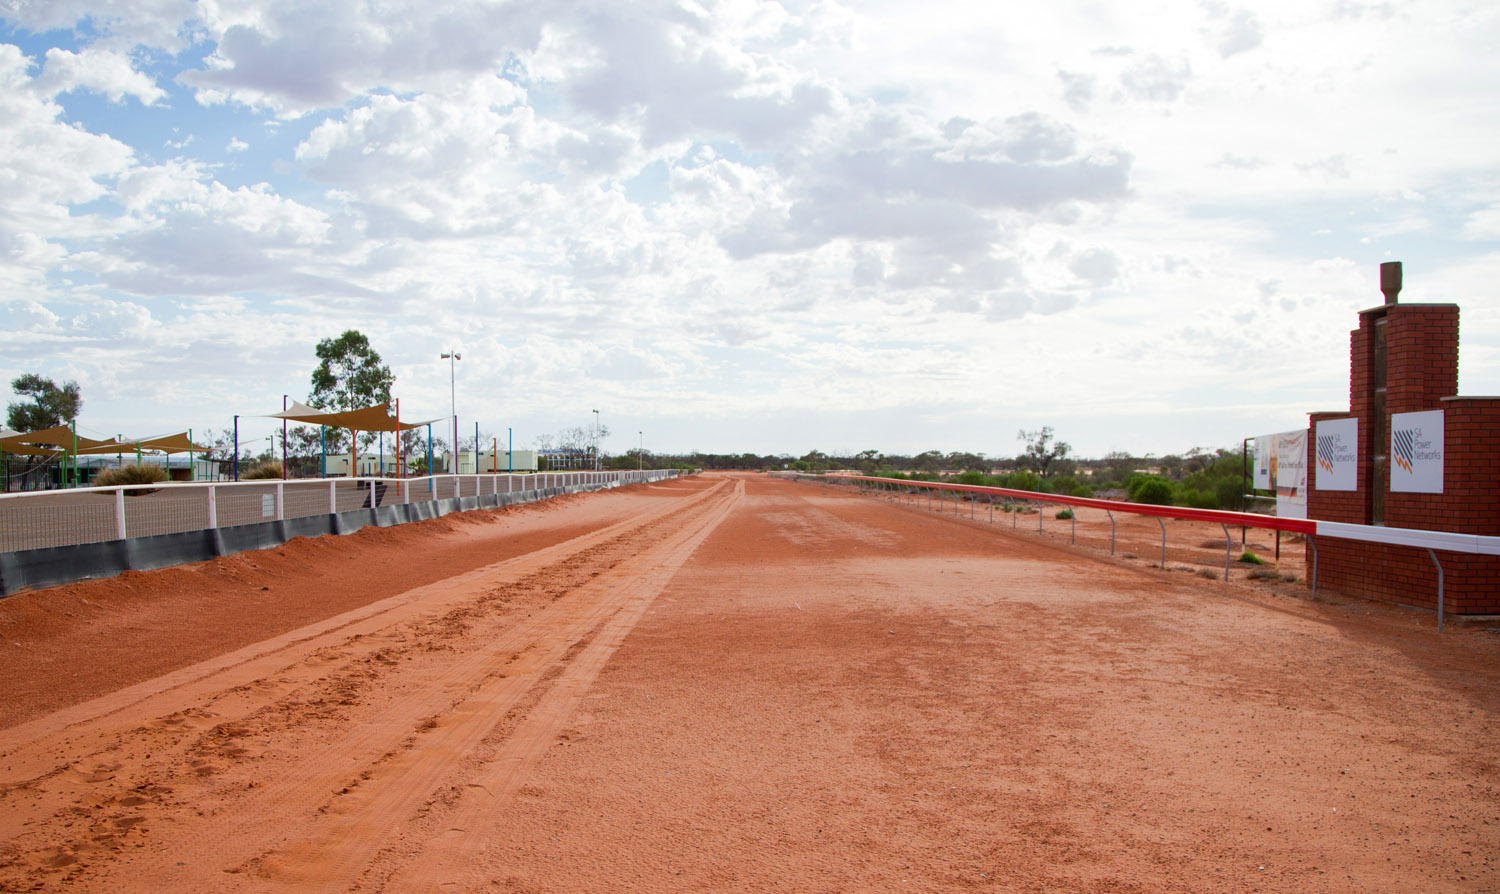 Raine & Horne Roxby Downs Sponsored Roxby Race Course